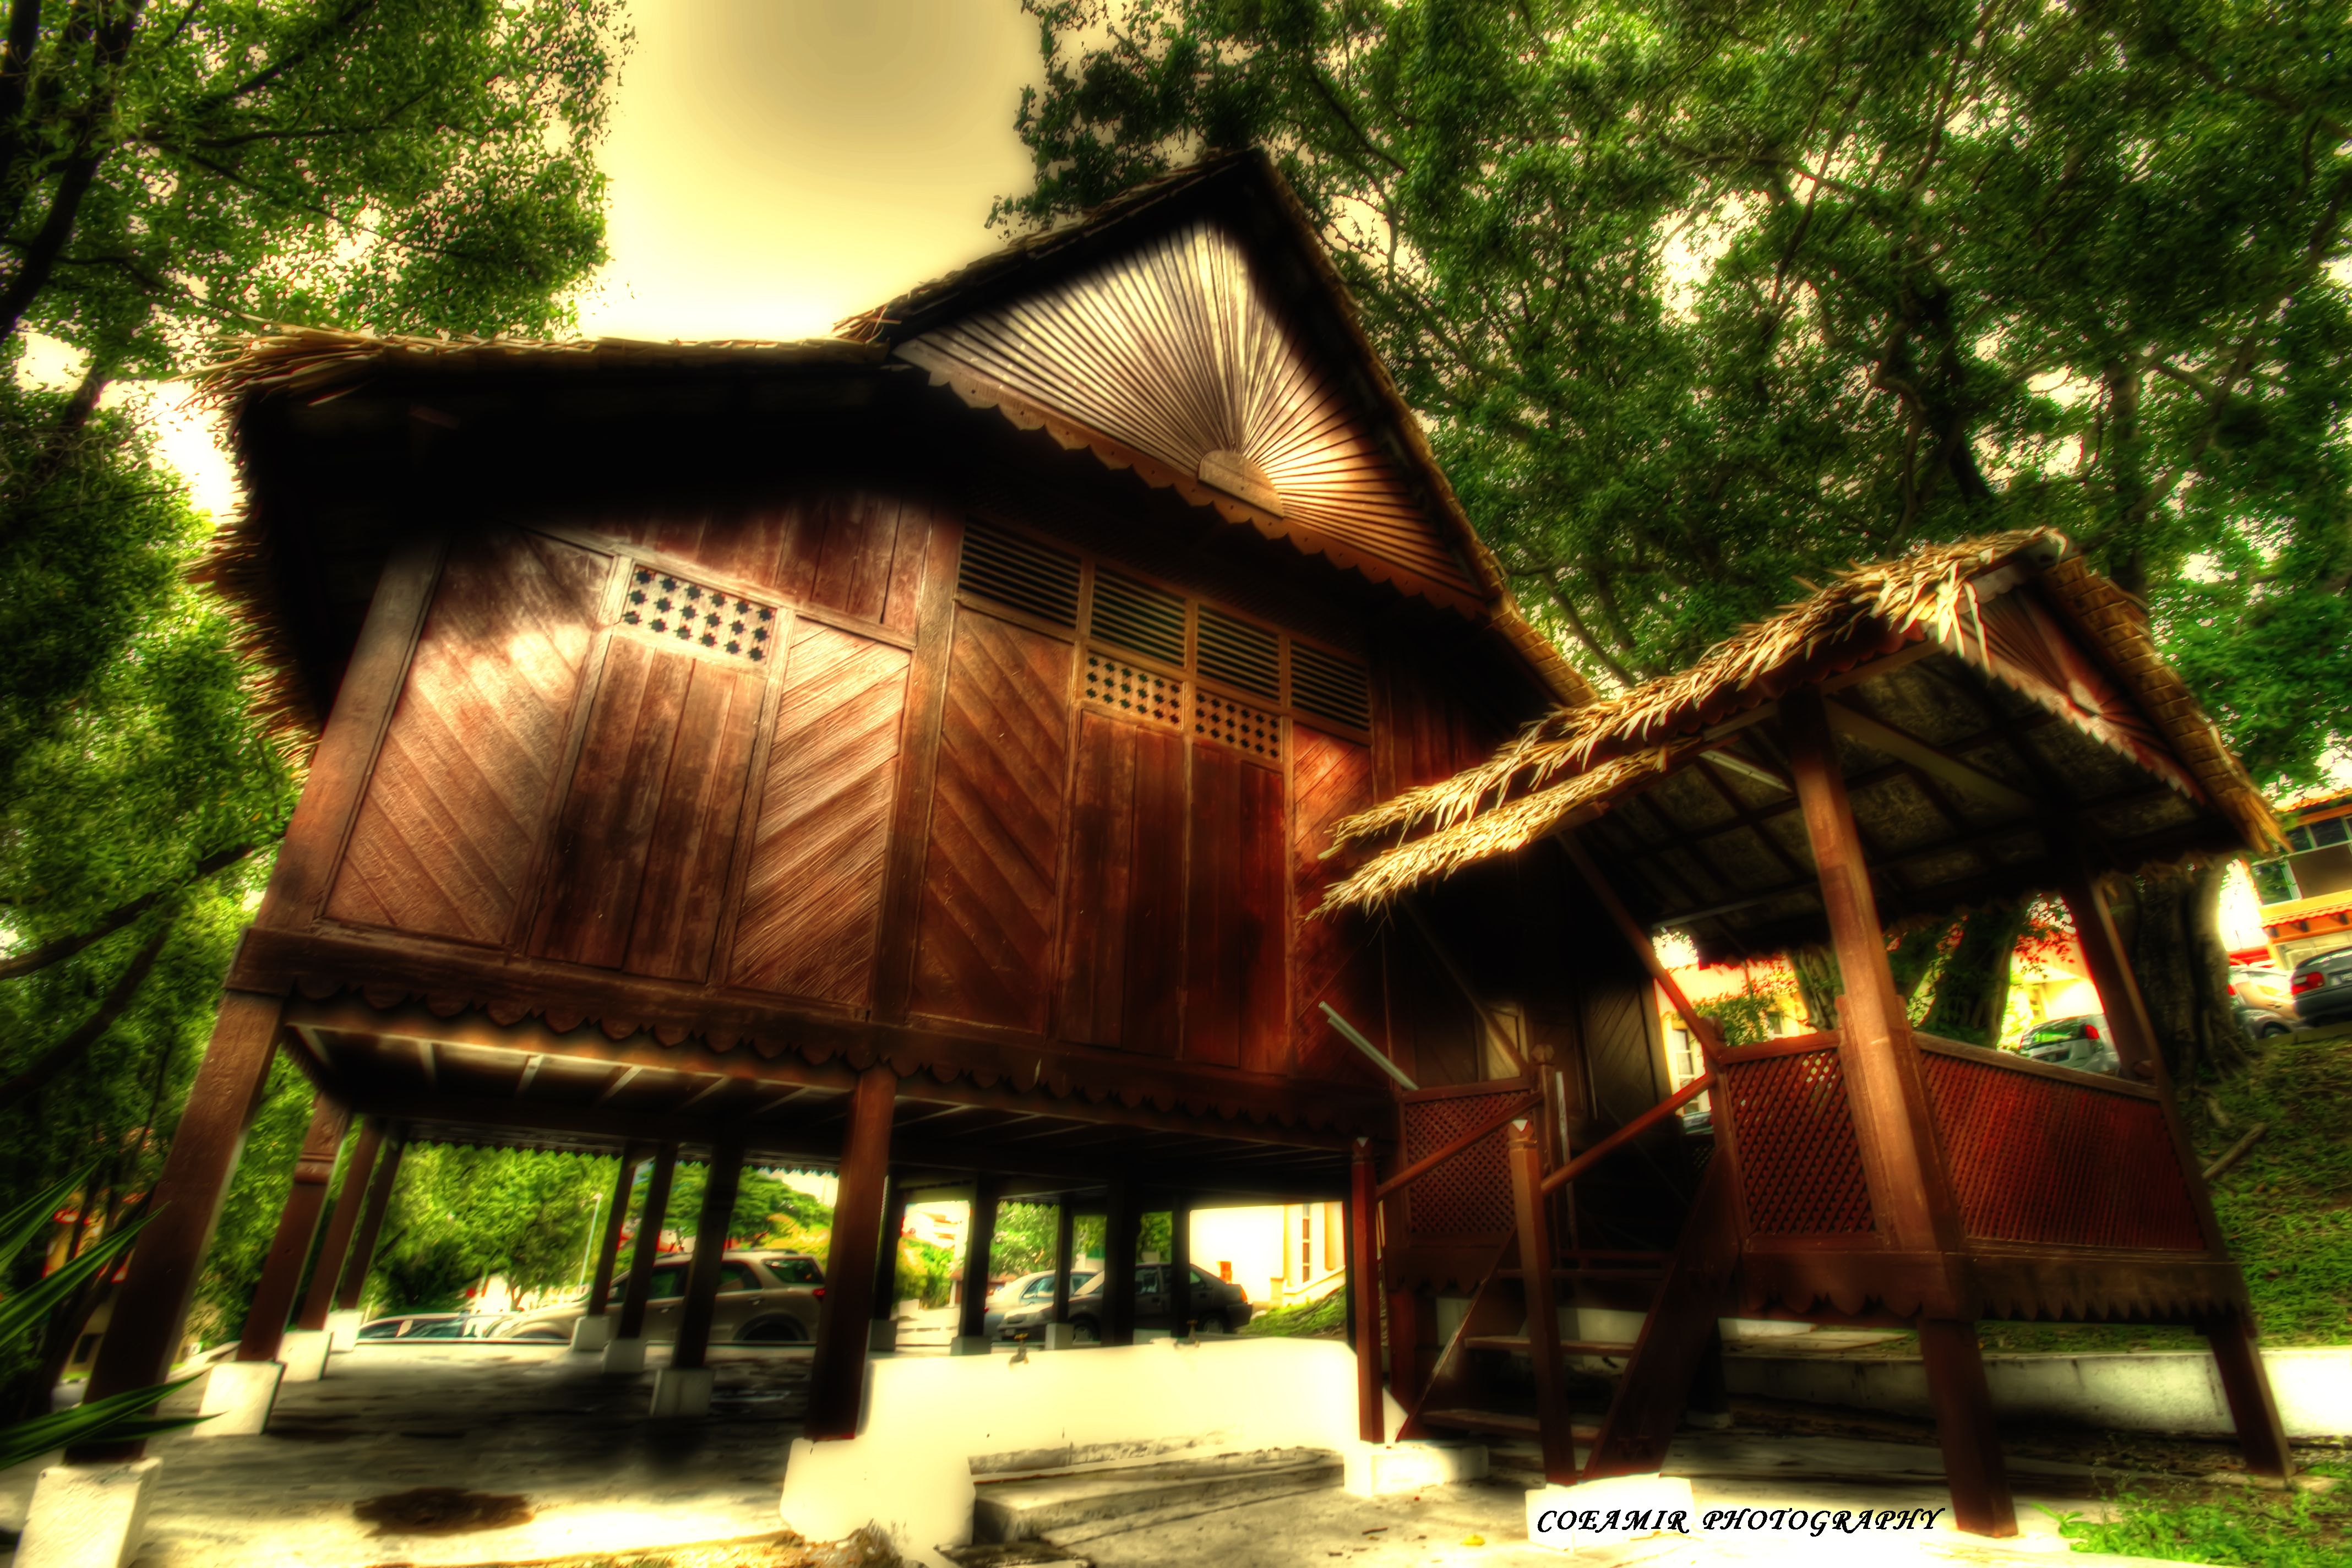 1000+ images about Modern kampung on Pinterest - ^